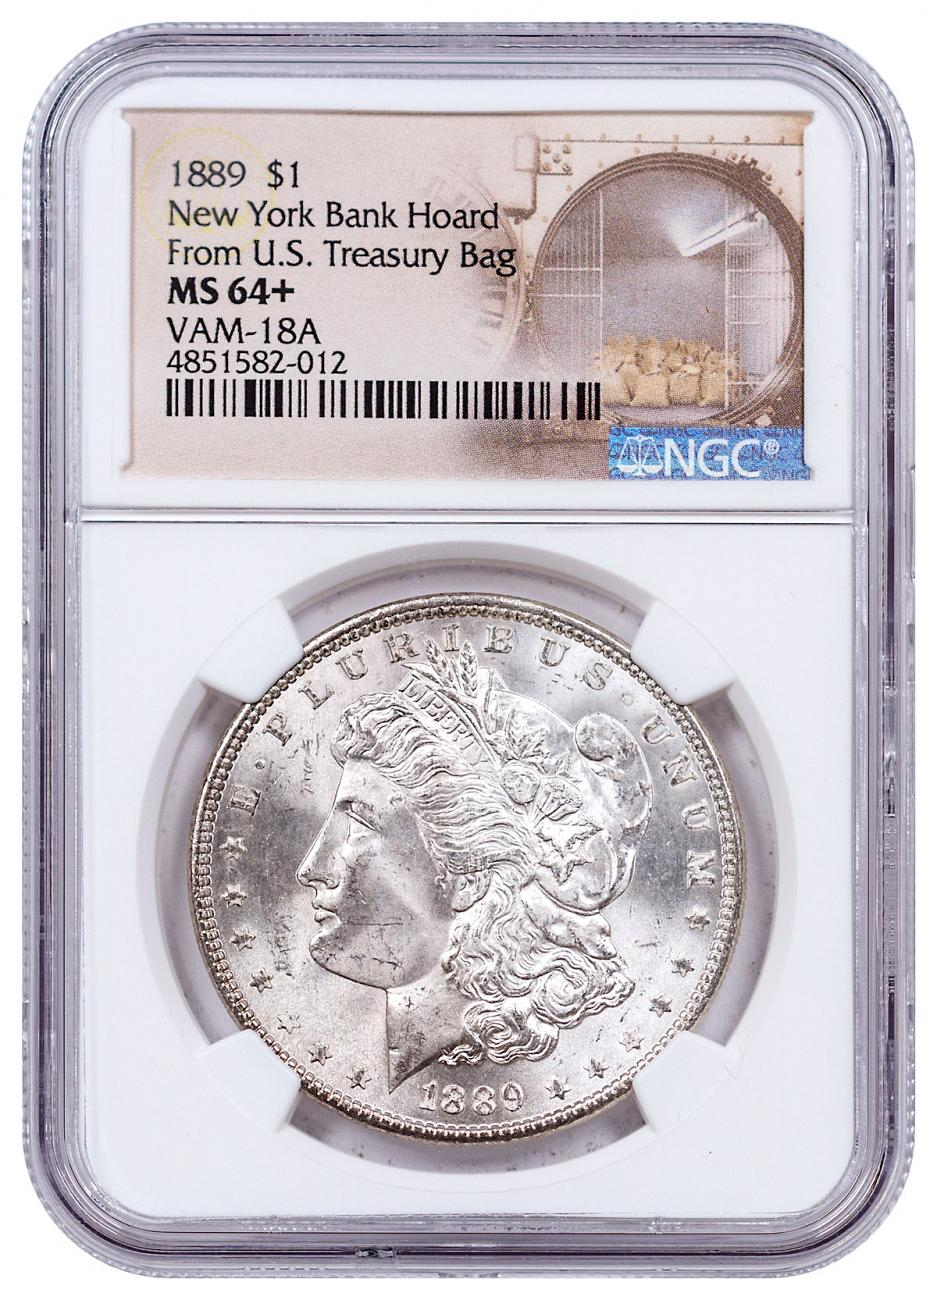 1889 Morgan Silver Dollar From the New York Bank Hoard NGC MS64+ VAM-18A